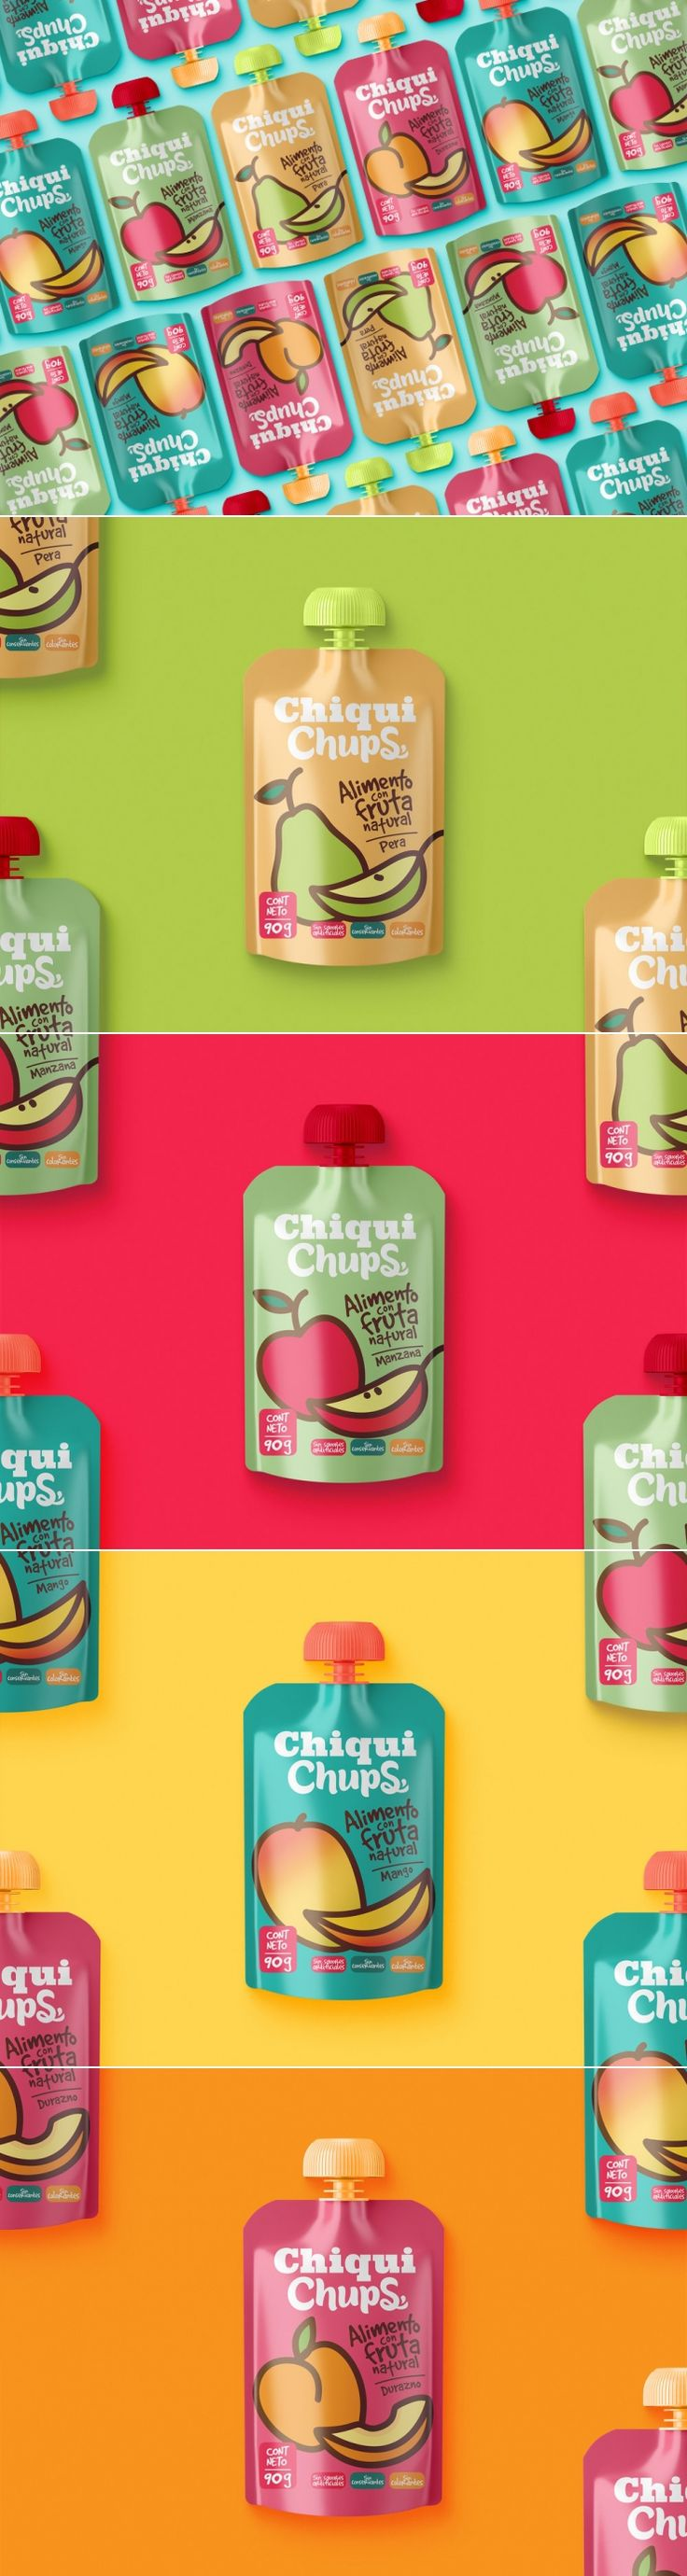 ChiquiChups Are a Bold Take on Baby Food — The Dieline | Packaging & Branding Design & Innovation News